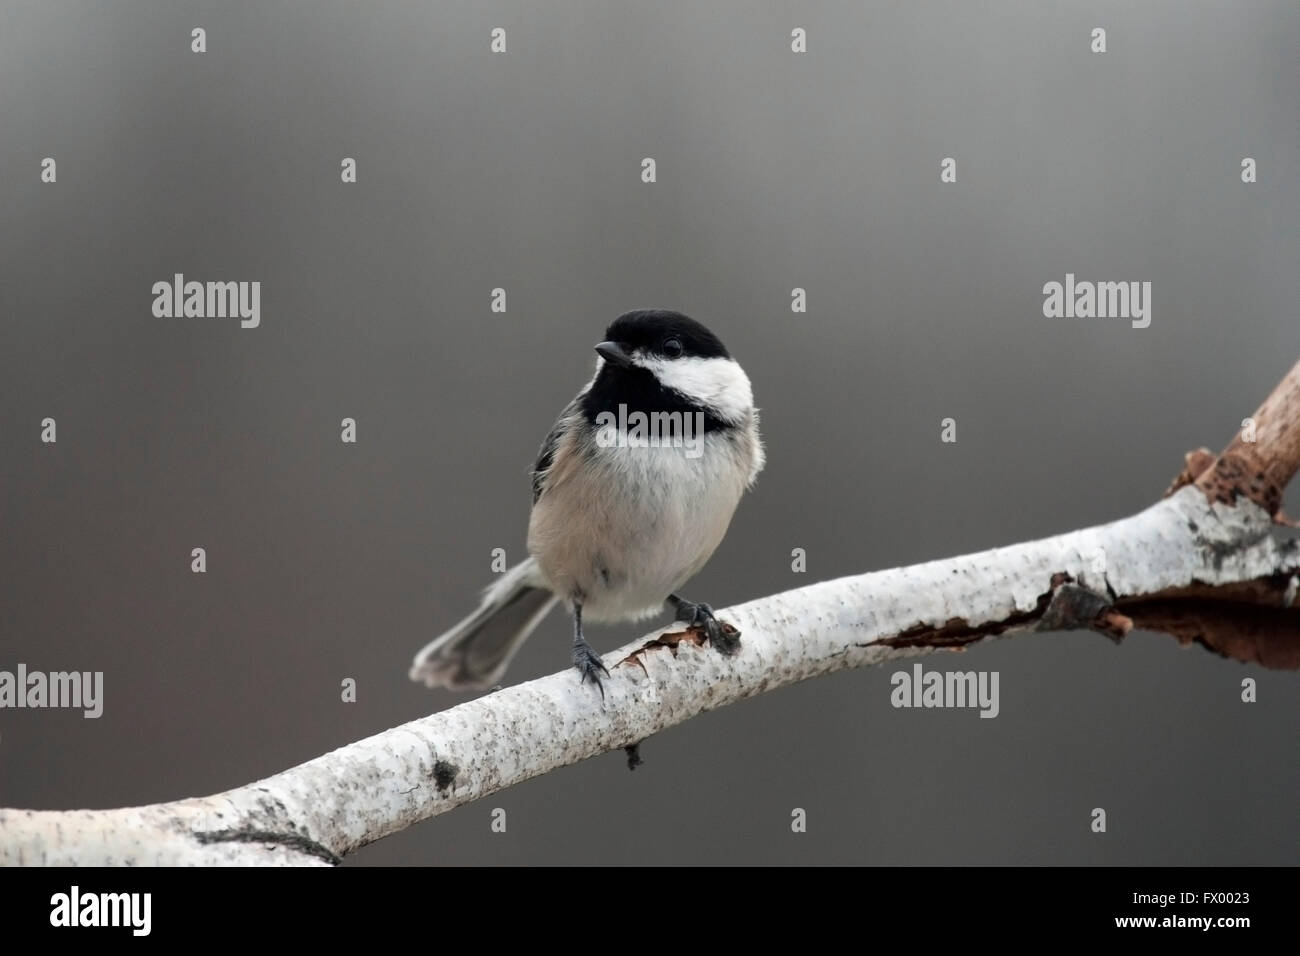 Chickadee perches on birch branch - Stock Image